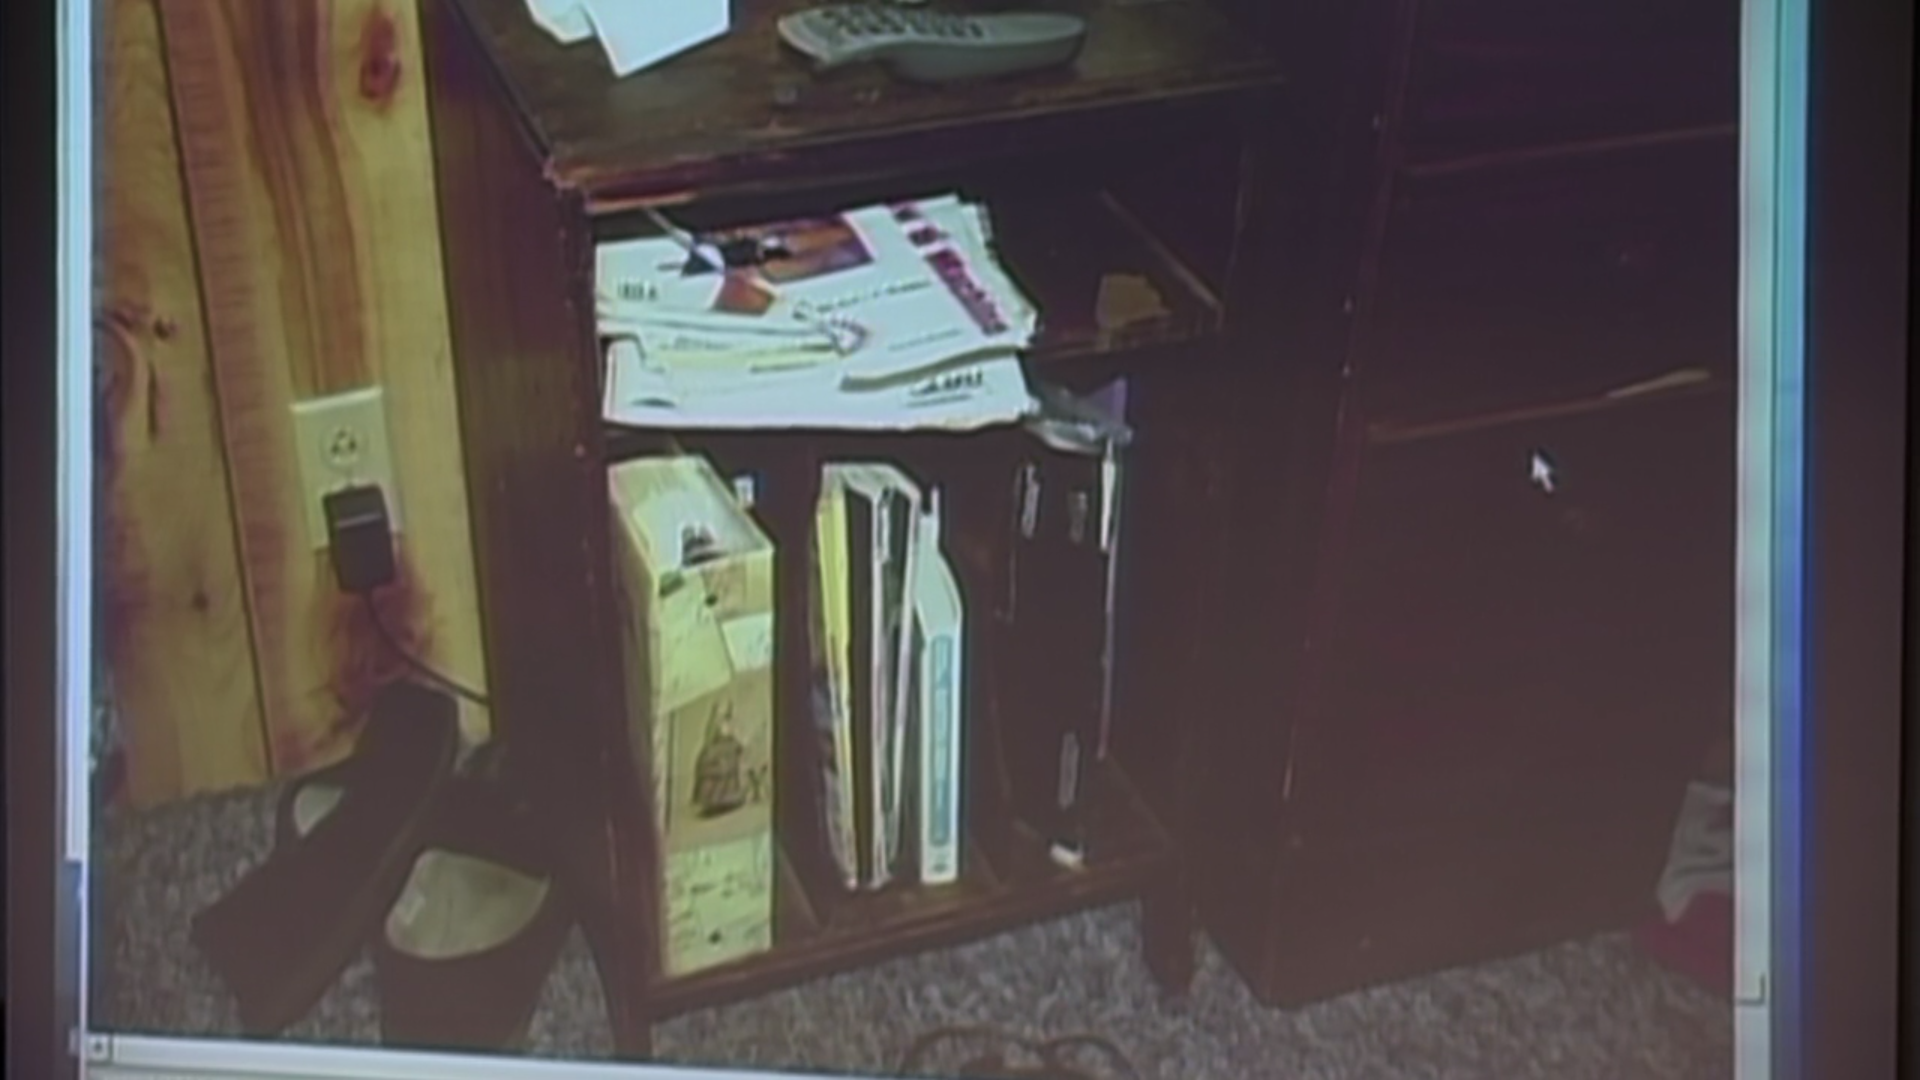 The shelf that the key was supposedly behind